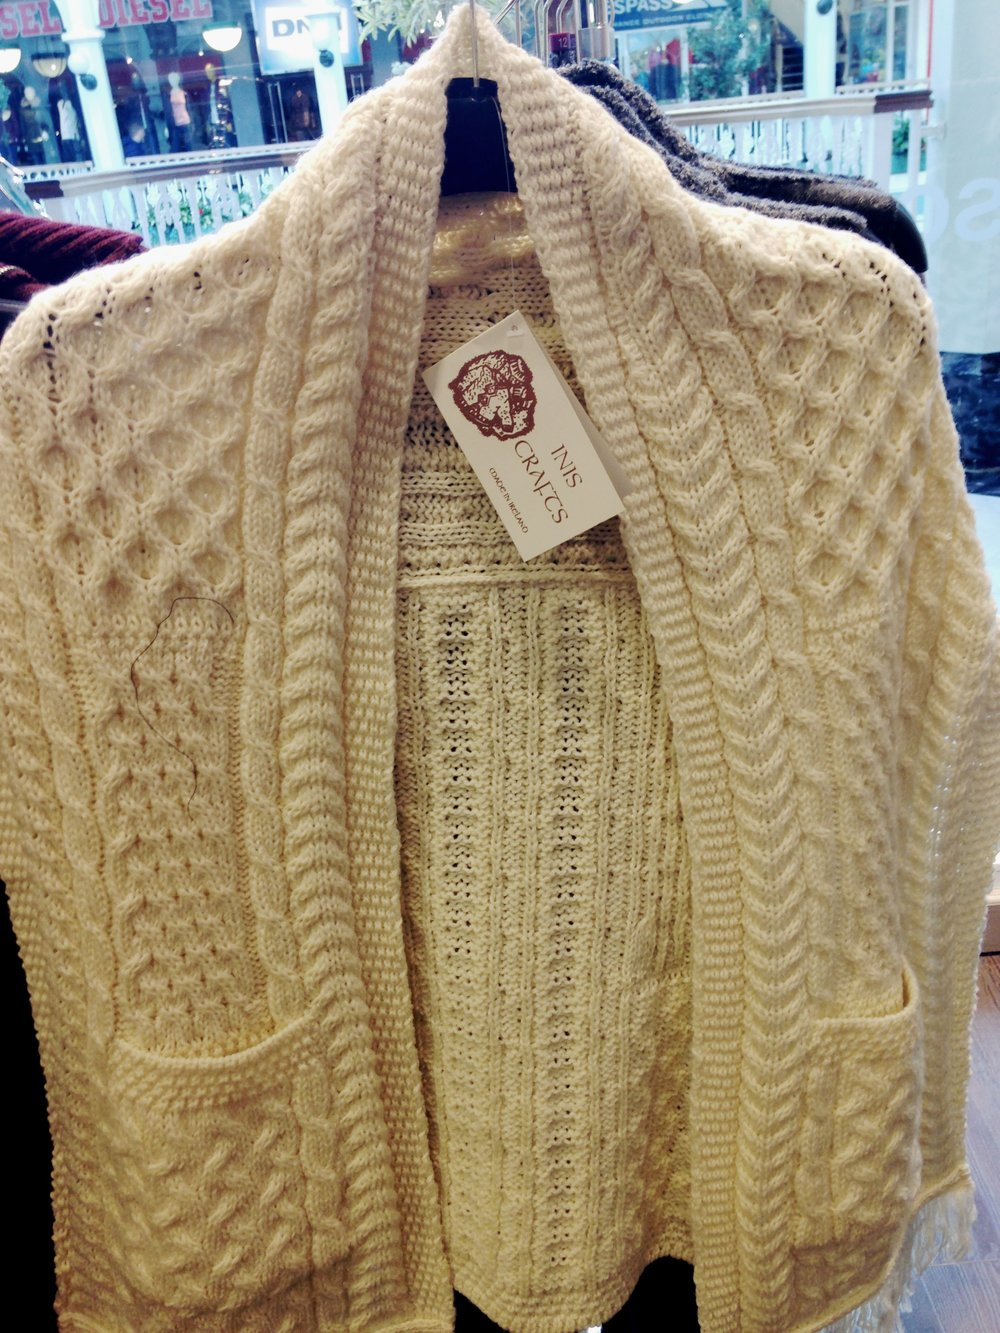 Tk Maxx! Aran type knit from Inis Crafts. 100% wool. €39.99